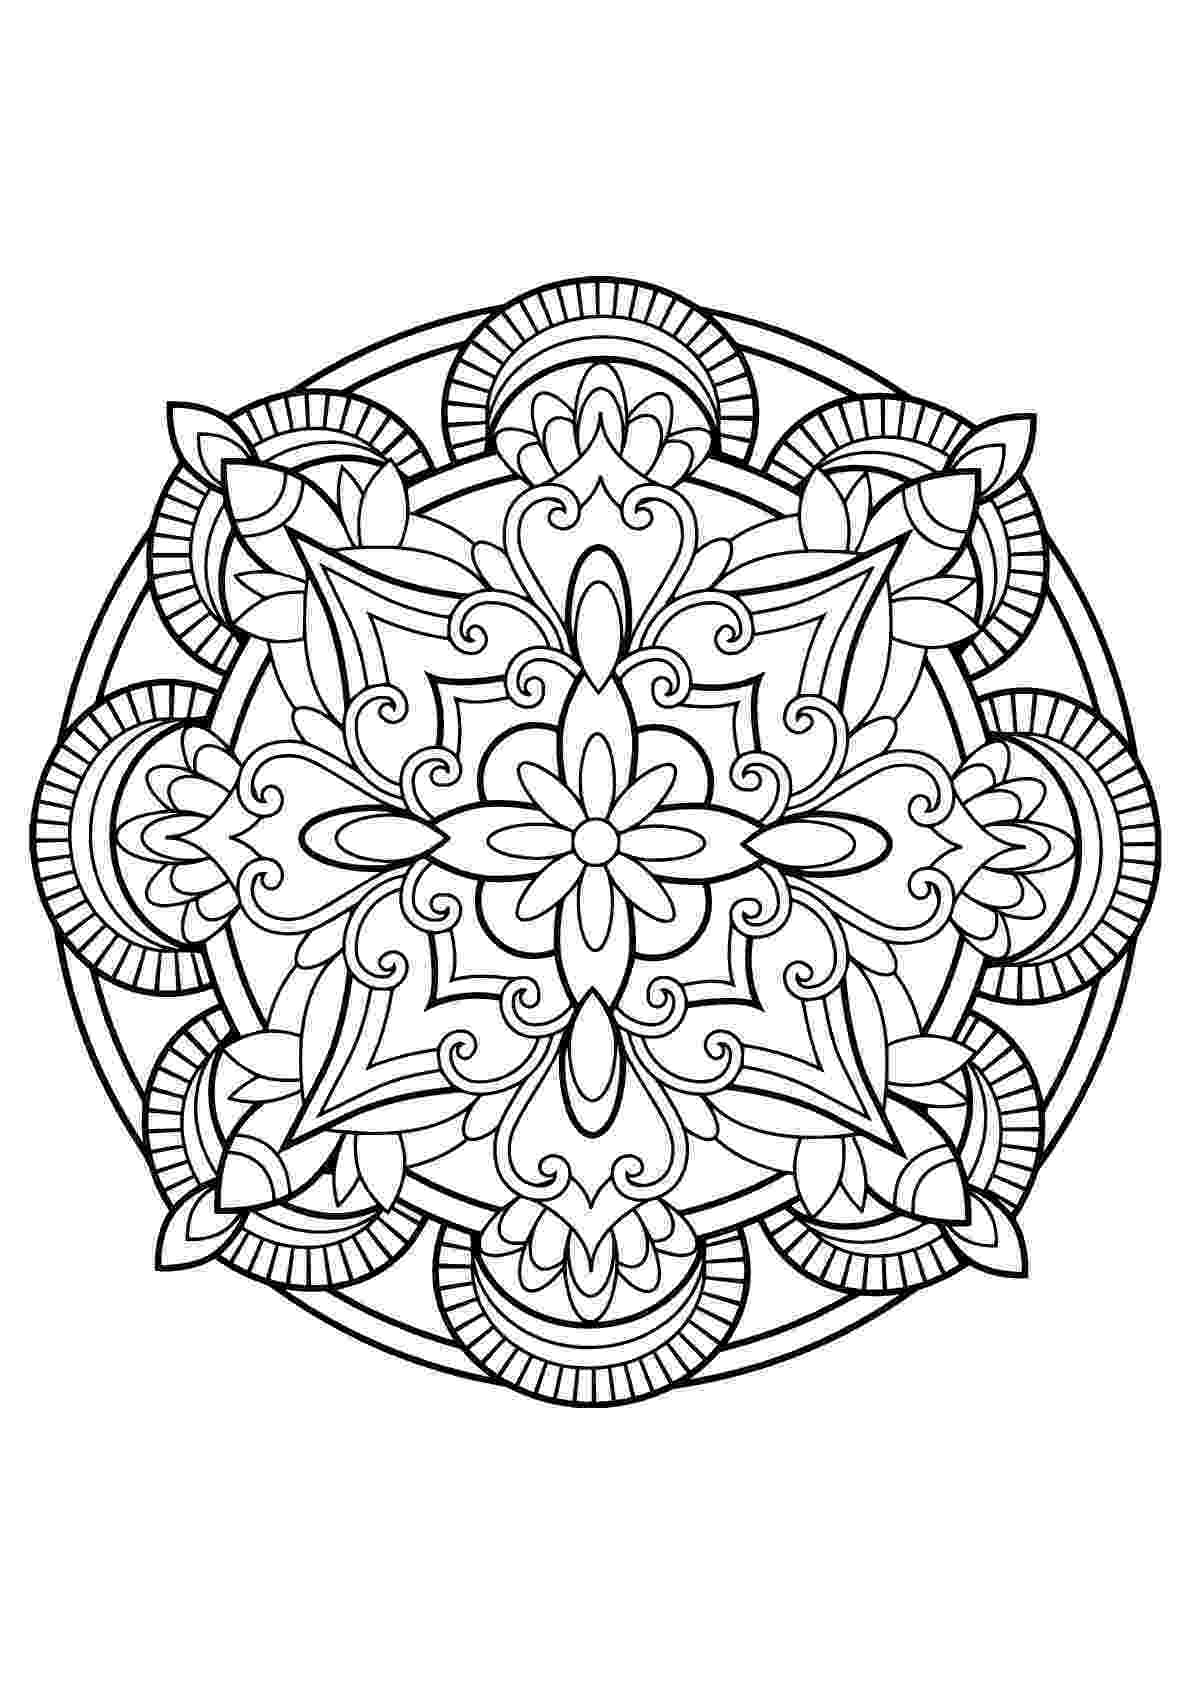 free online mandala coloring pages for adults free printable mandala coloring pages for adults best online coloring free adults for mandala pages